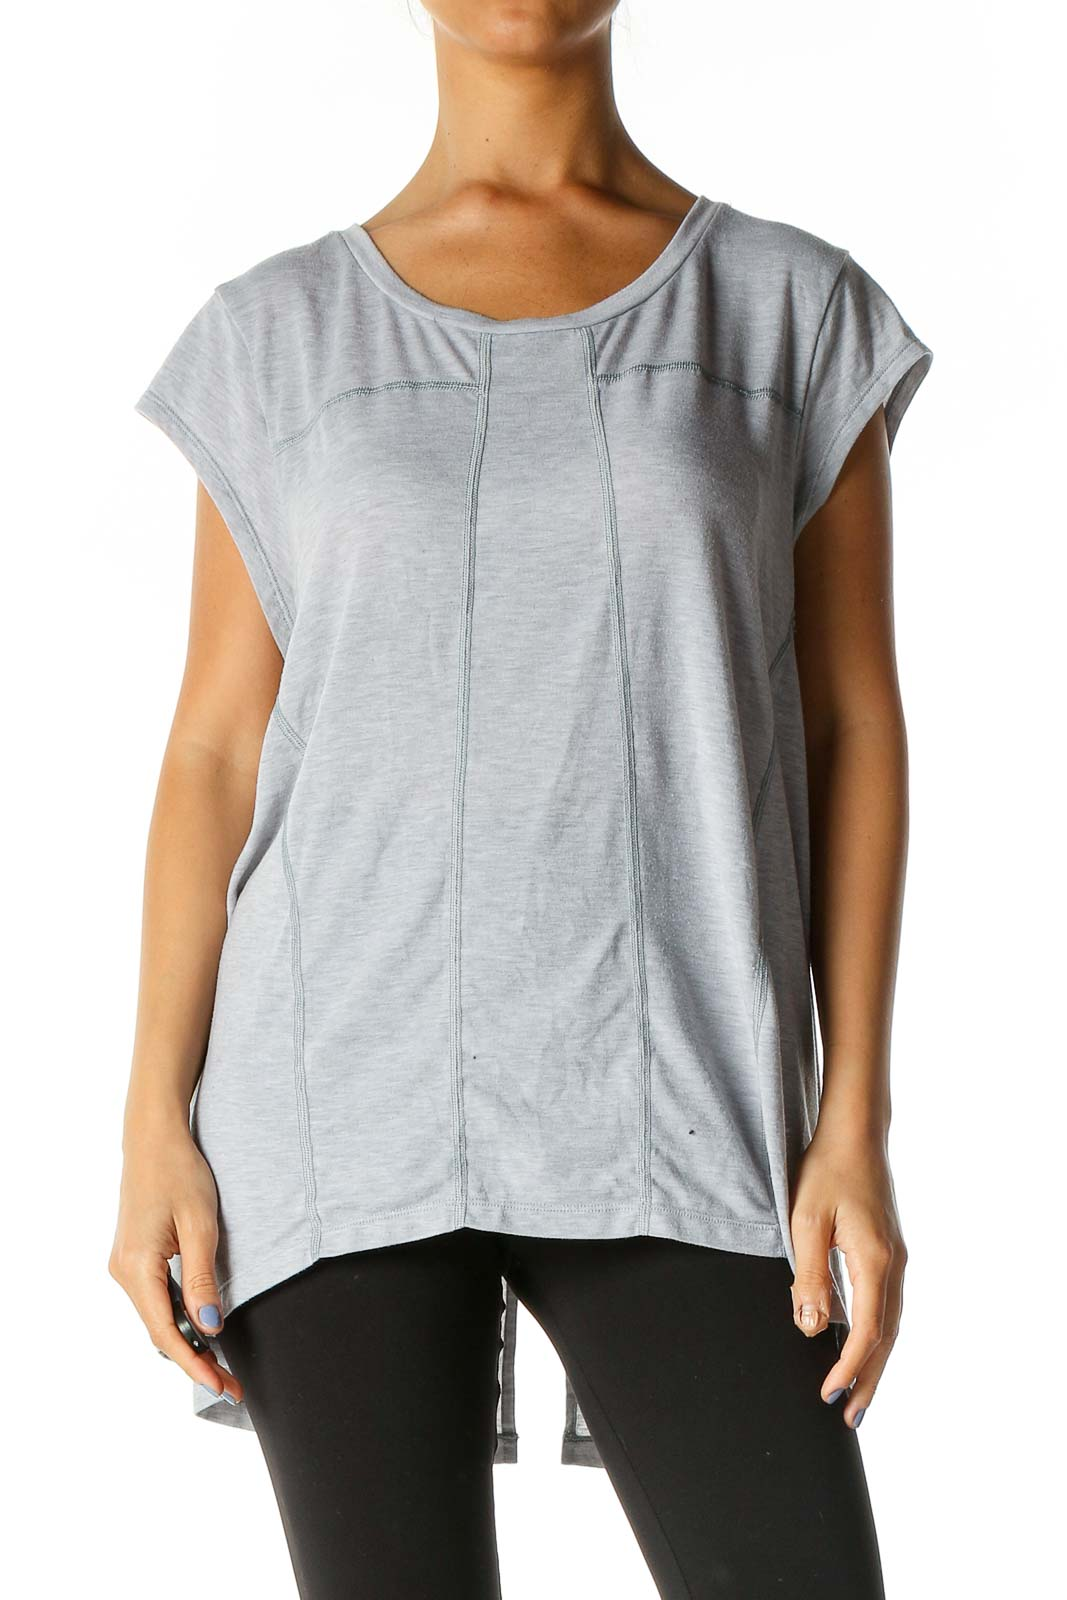 Gray Solid Activewear Blouse Front